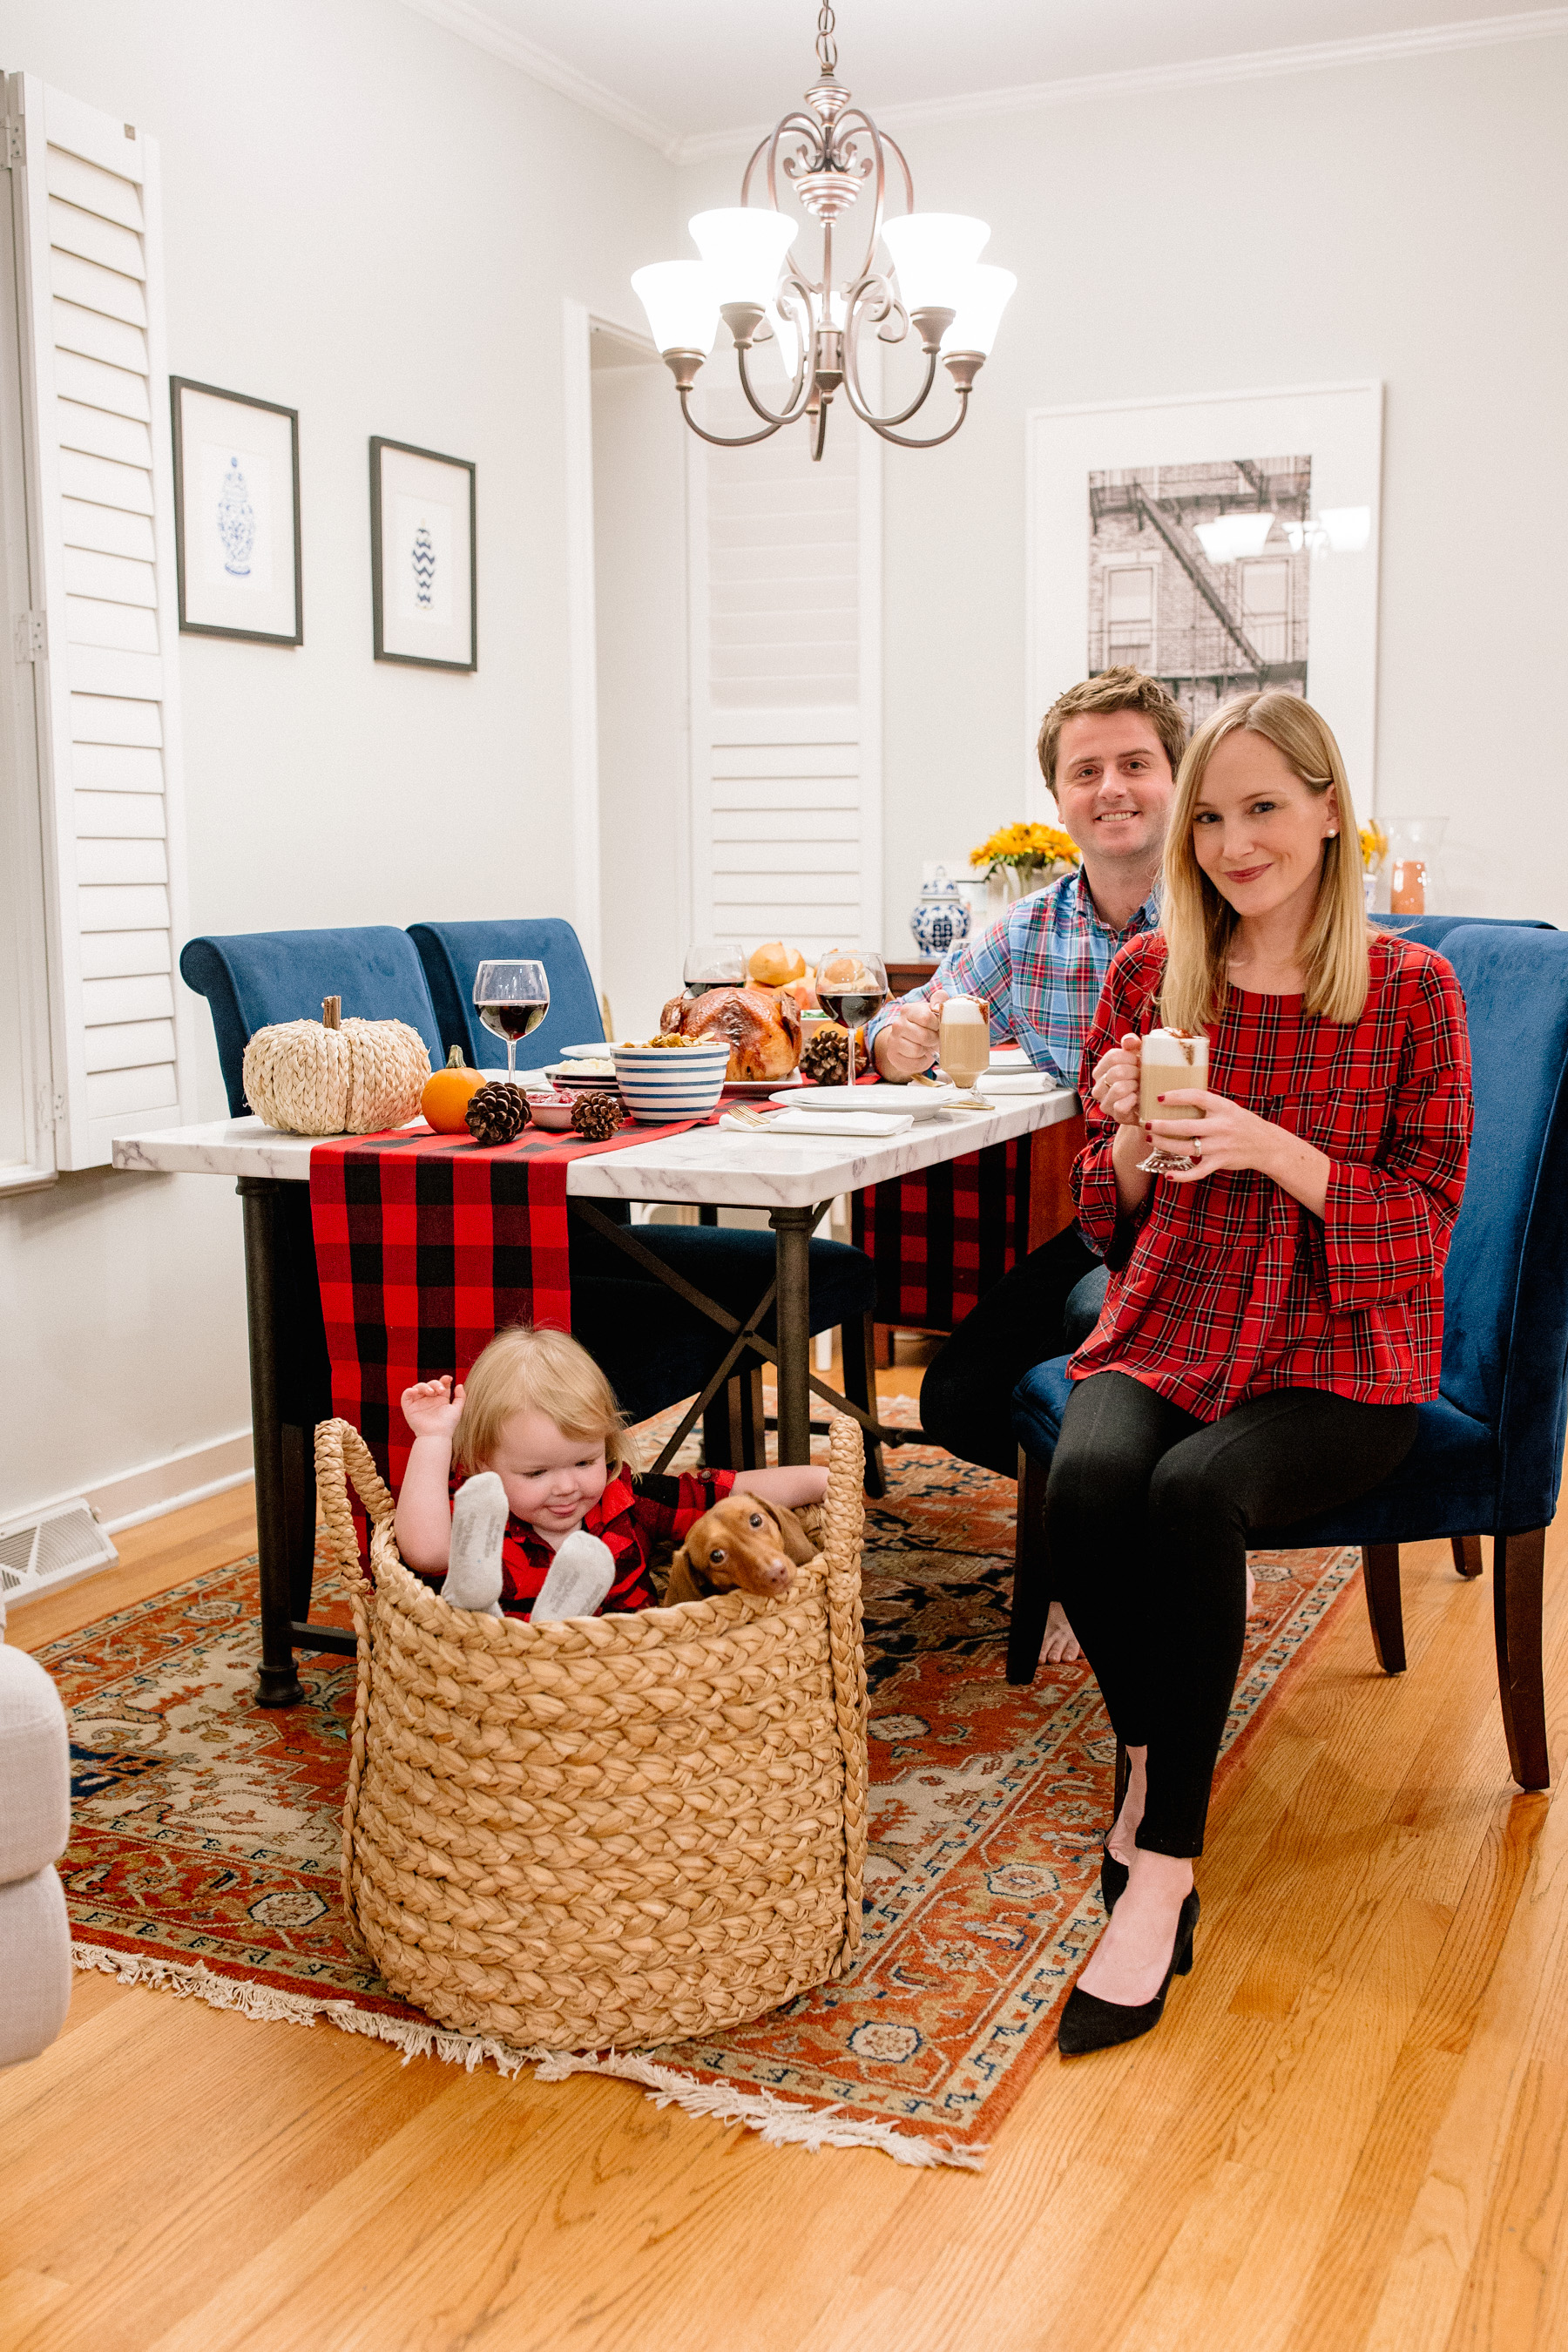 10 Tips for Hosting Thanksgiving for the First Time